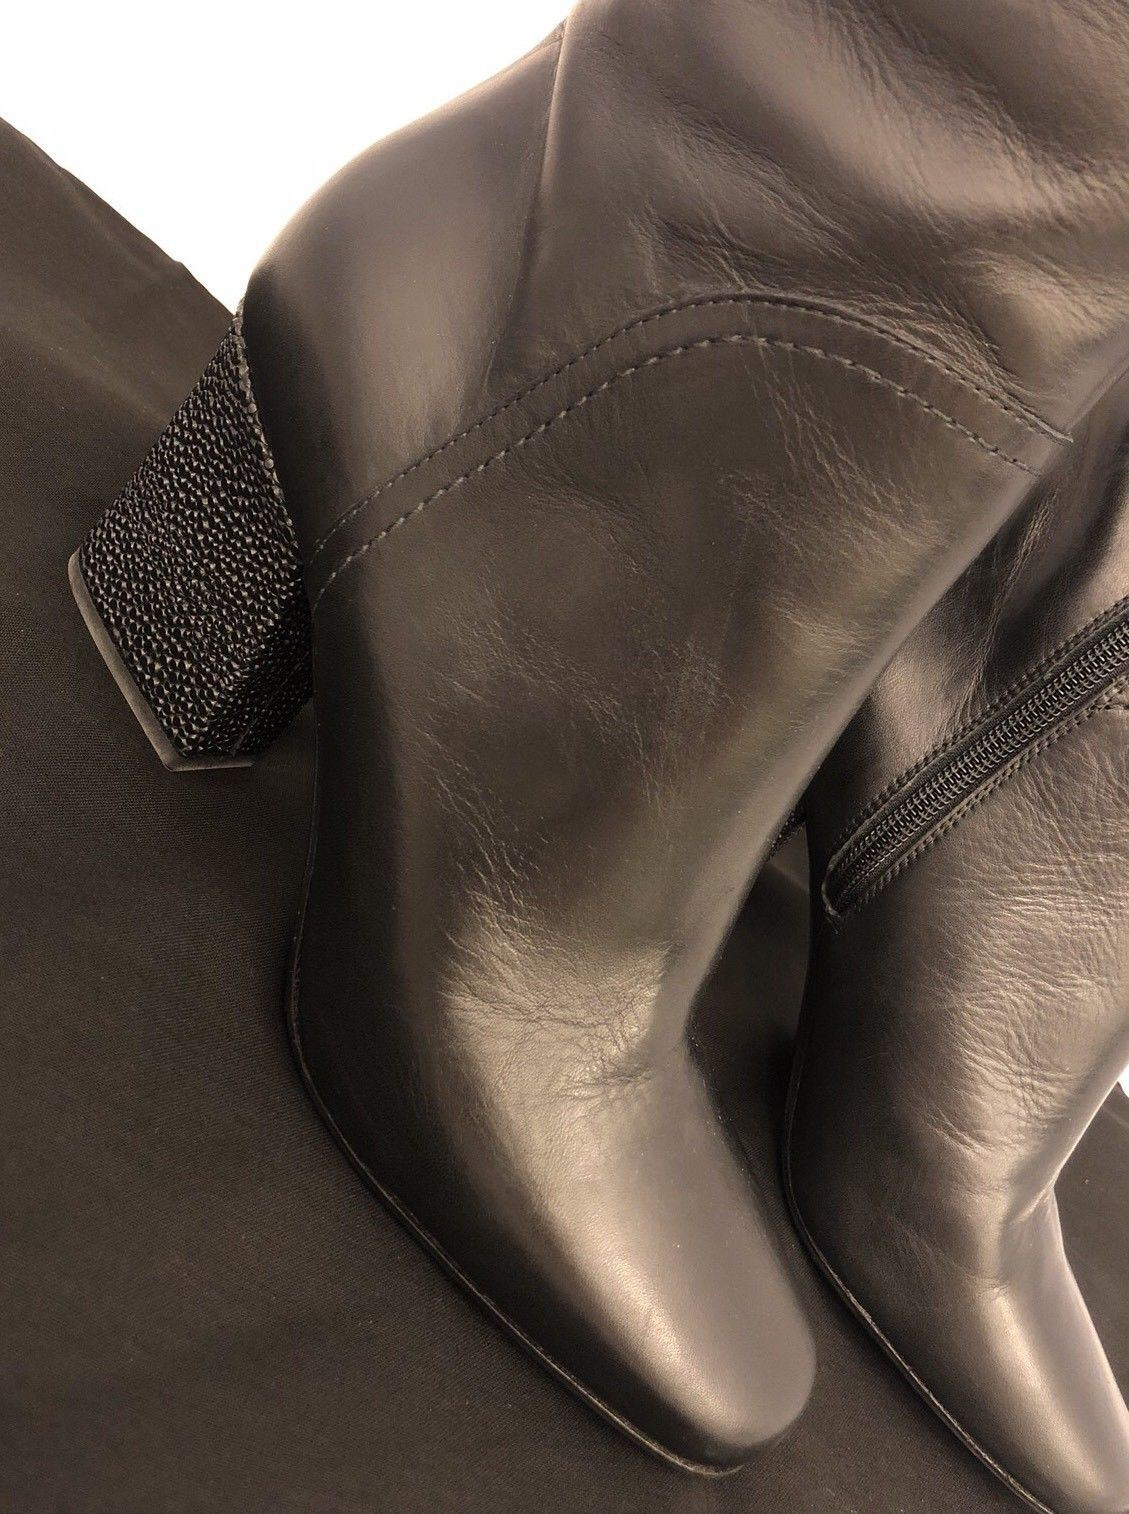 NIB $925 Emporio Armani Women's Black Leather Knee High Boots 37 Eu IT X30135 - BAYSUPERSTORE